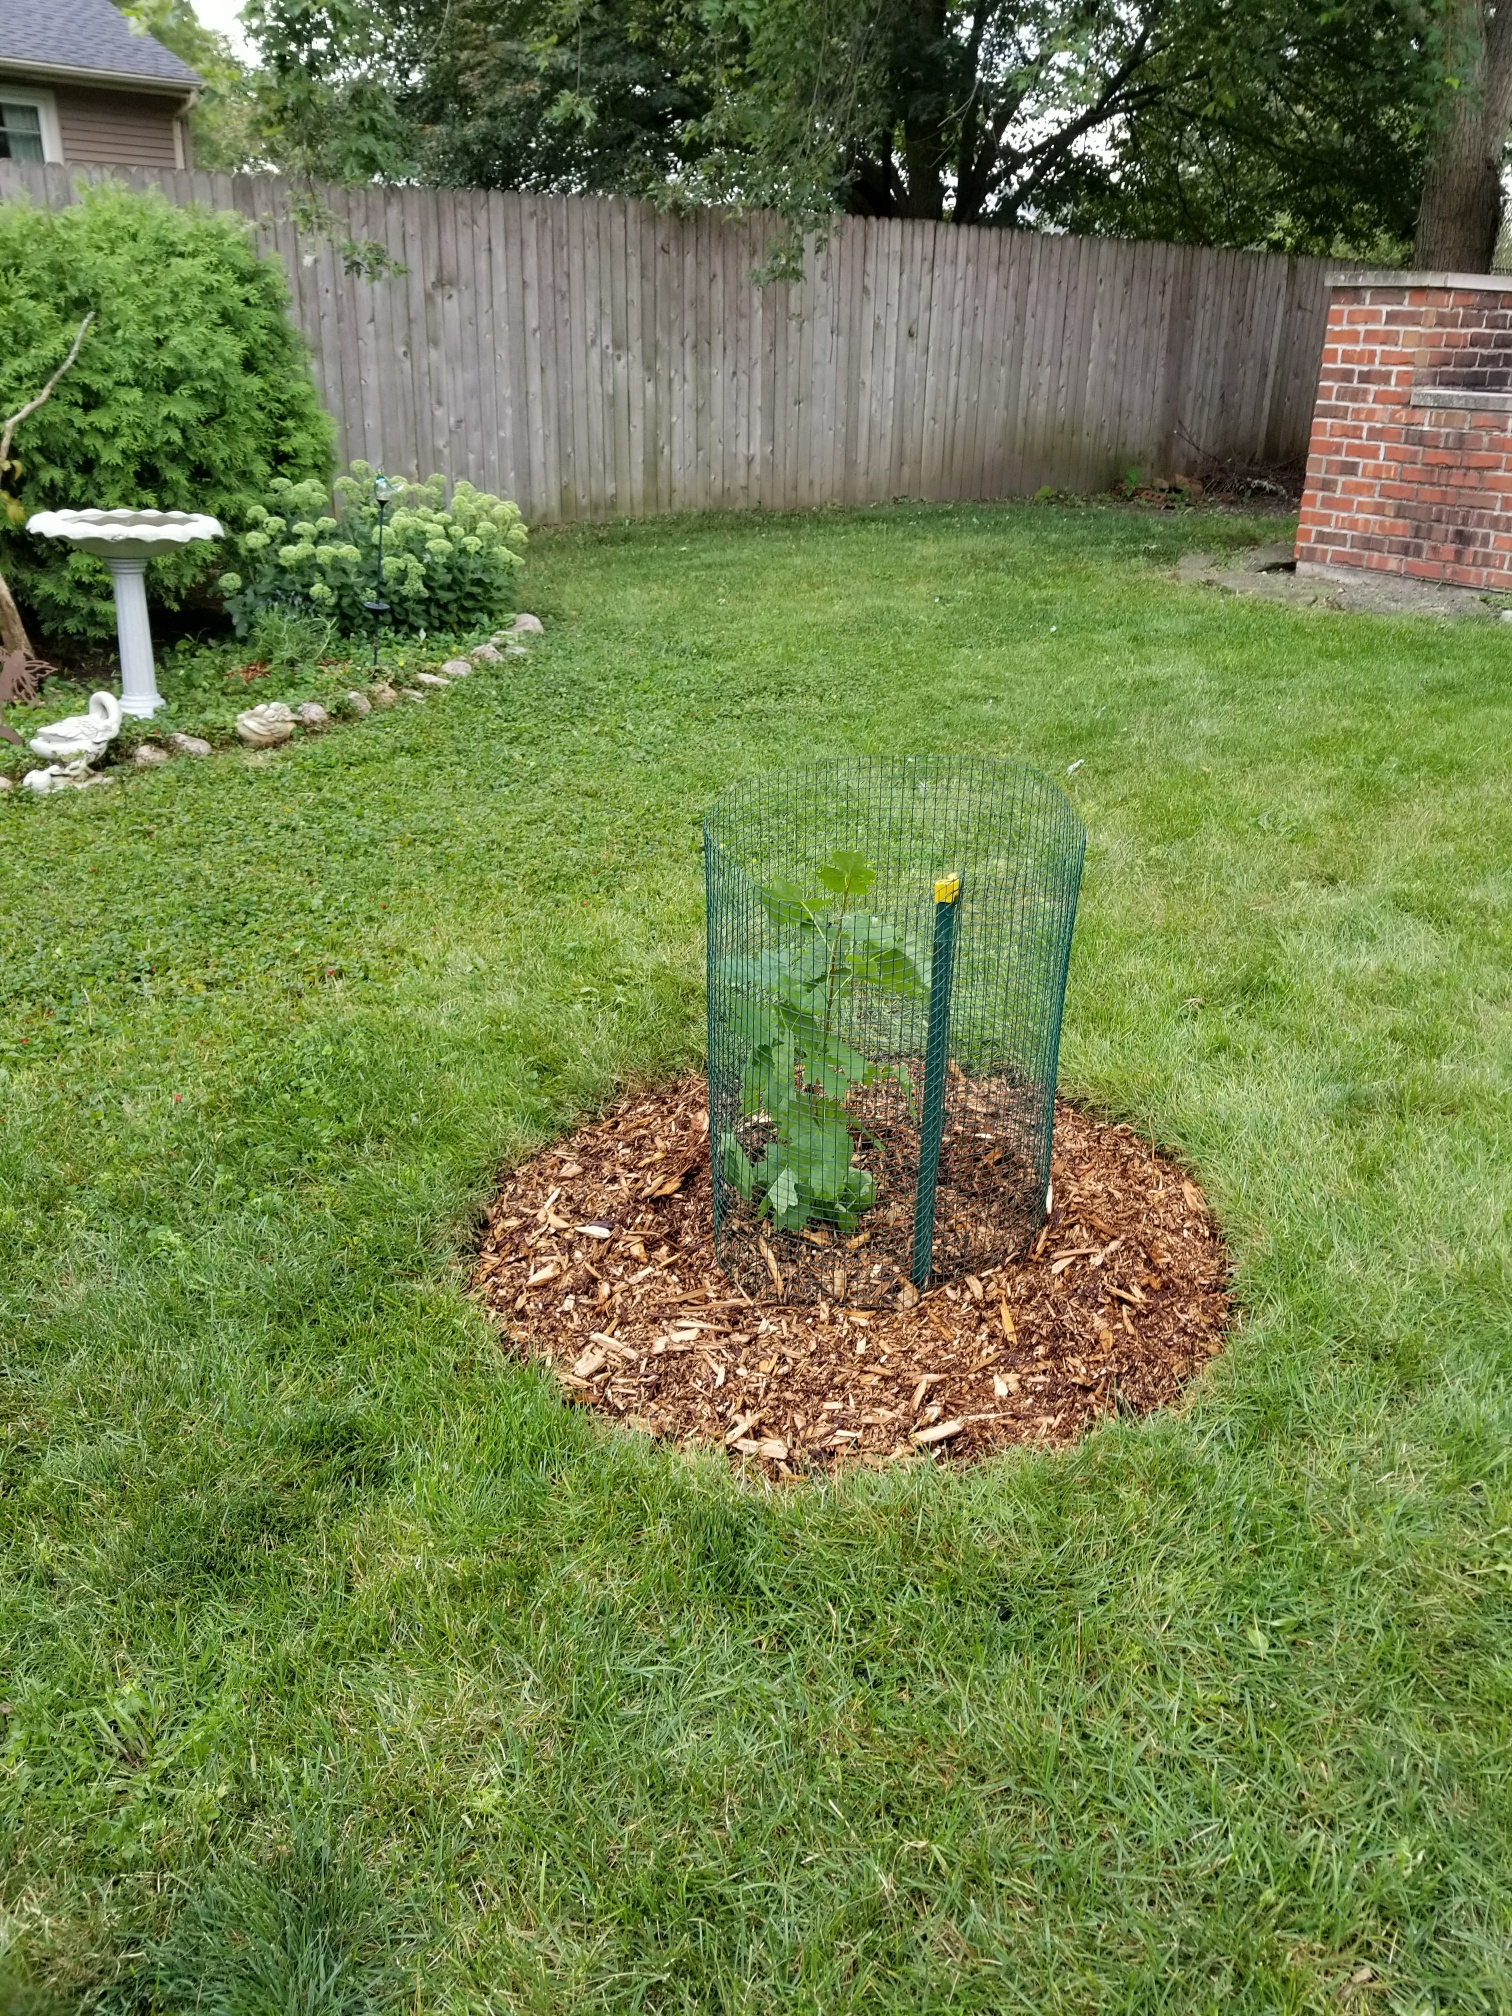 We received the seedling on Saturday at the Veggie Fest and planted it the next day on Sunday. We planted it in our back yard in Naperville. We put chicken wire around it to protect it from the rabbits. ☺ Thank you! Lori